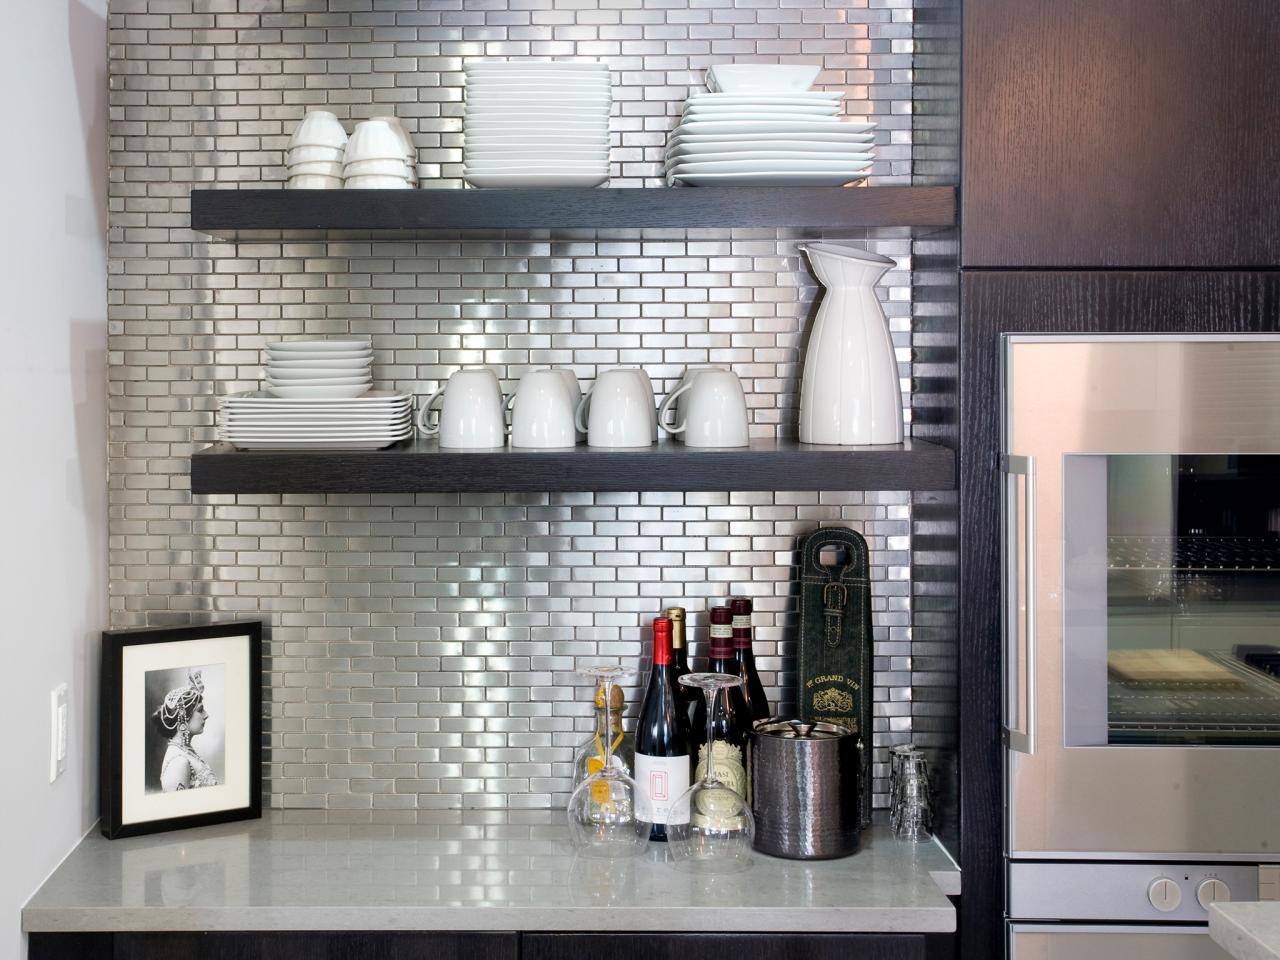 ceramic tile backsplash - Backsplash Design Ideas